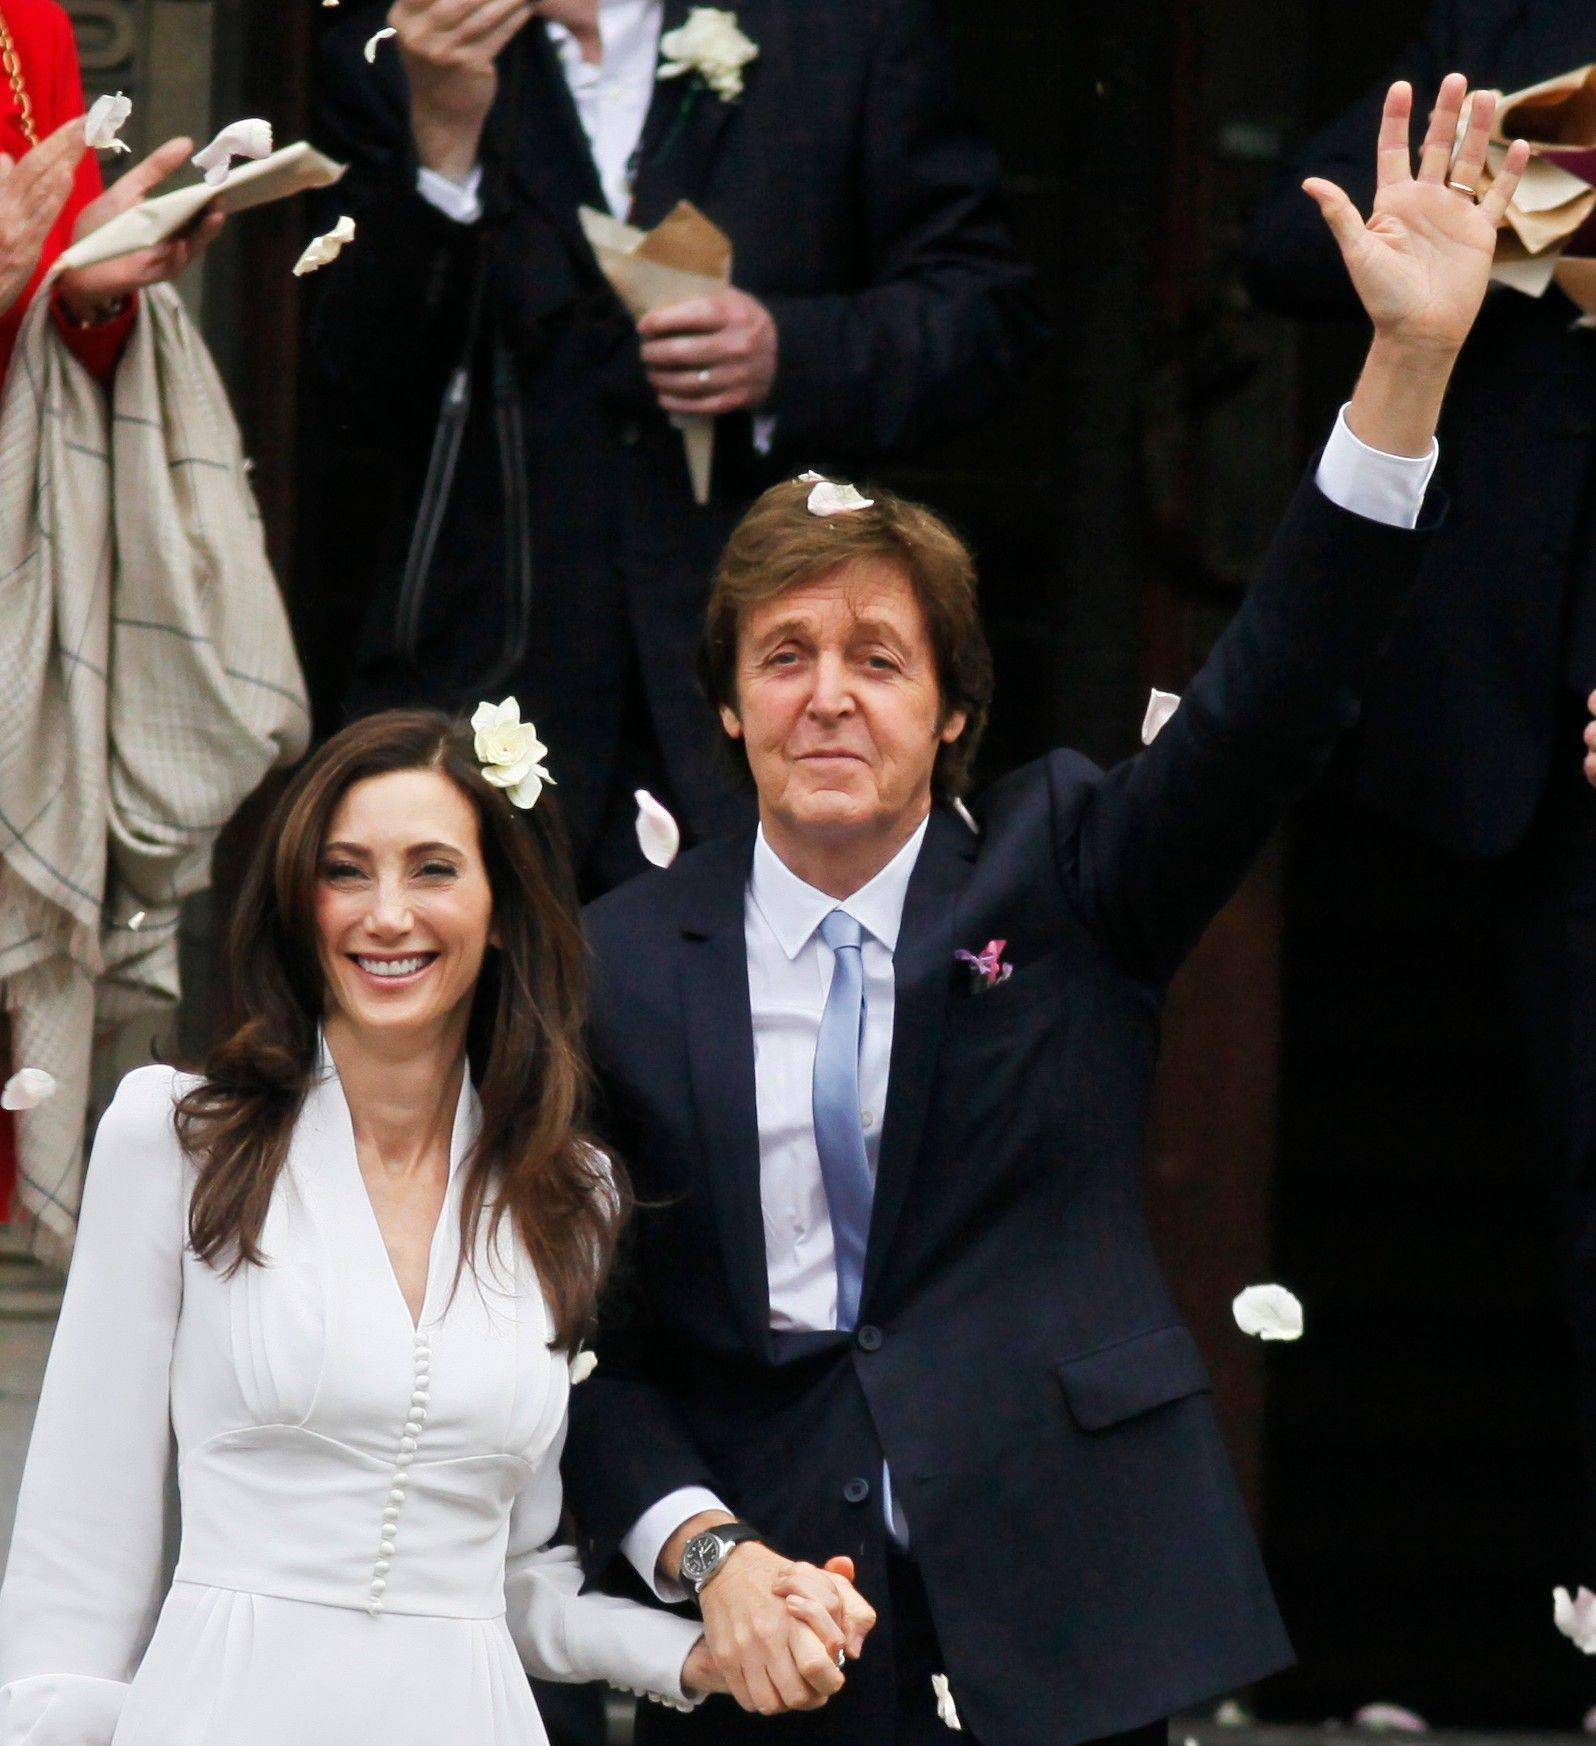 Former Beatle Paul McCartney and American heiress Nancy Shevell exit Marylebone Town Hall in central London after their wedding Sunday.